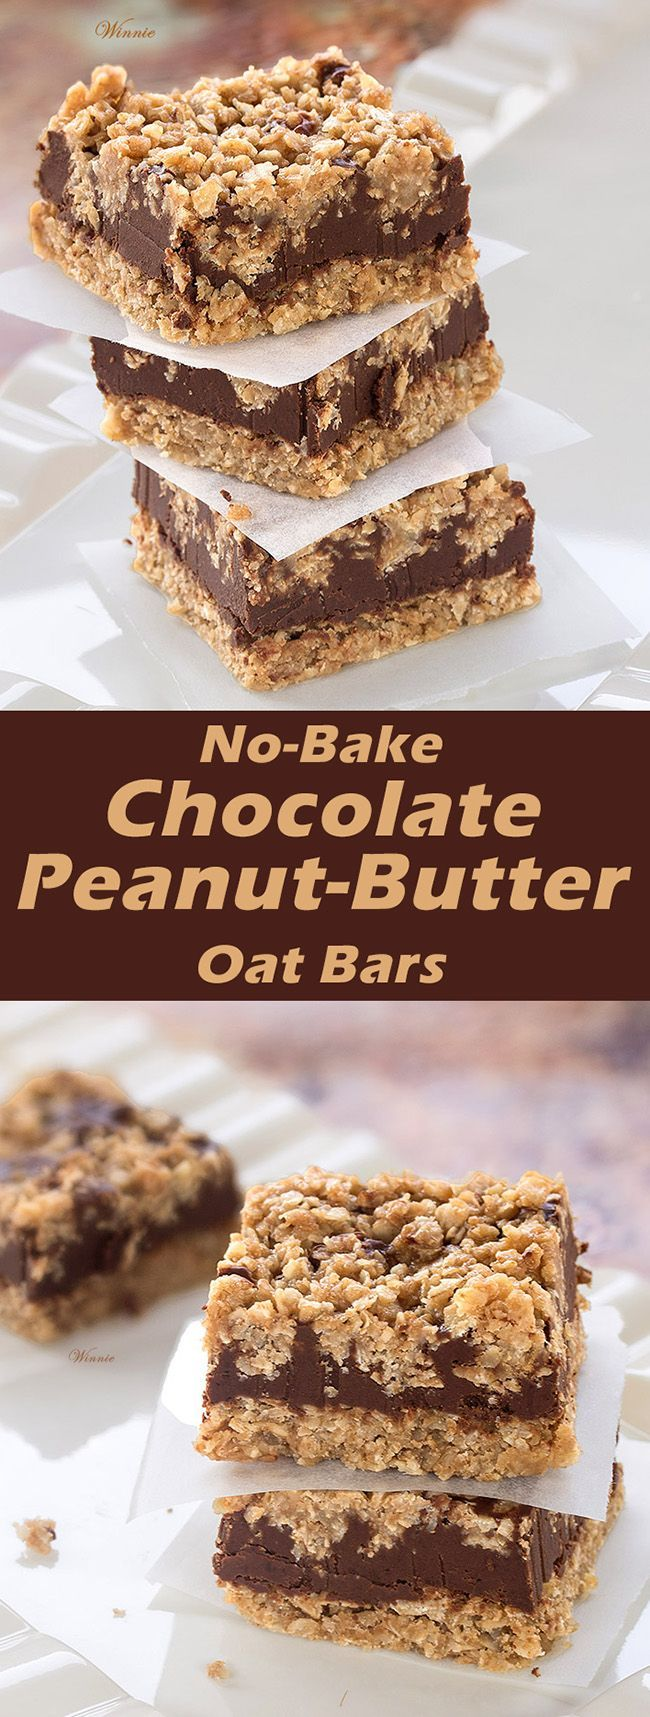 No-Bake Chocolate, Peanut-butter Oat Bars | Recipe | Bar, Oat bars and ...